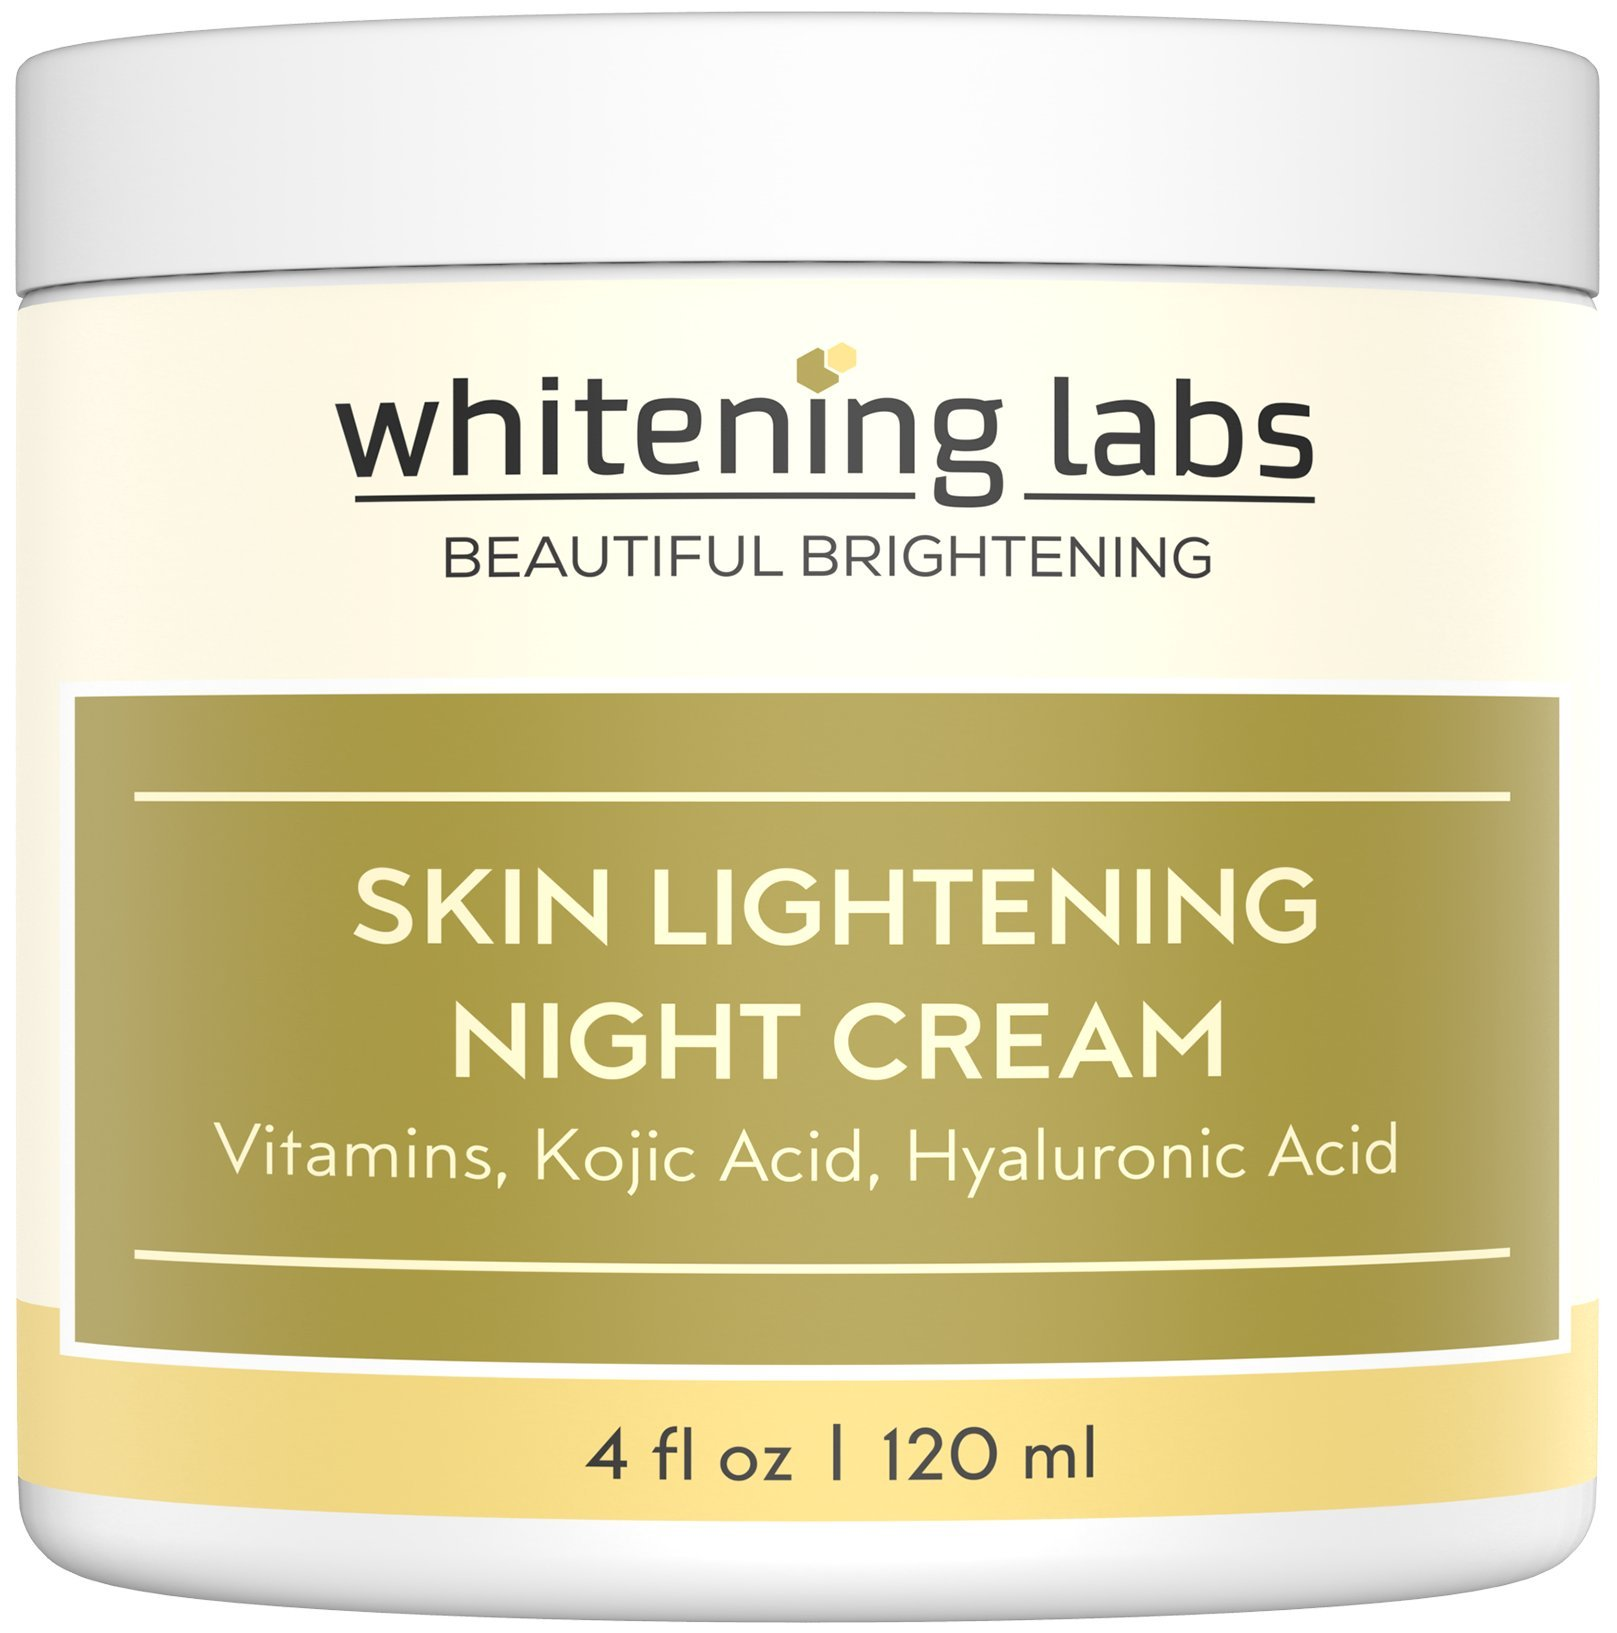 Whitening Cream Natural Skin Lightening Moisturizing and Anti Aging benefits. Contains Vitamin C Hyaluronic Acid Green Tea. 4 oz